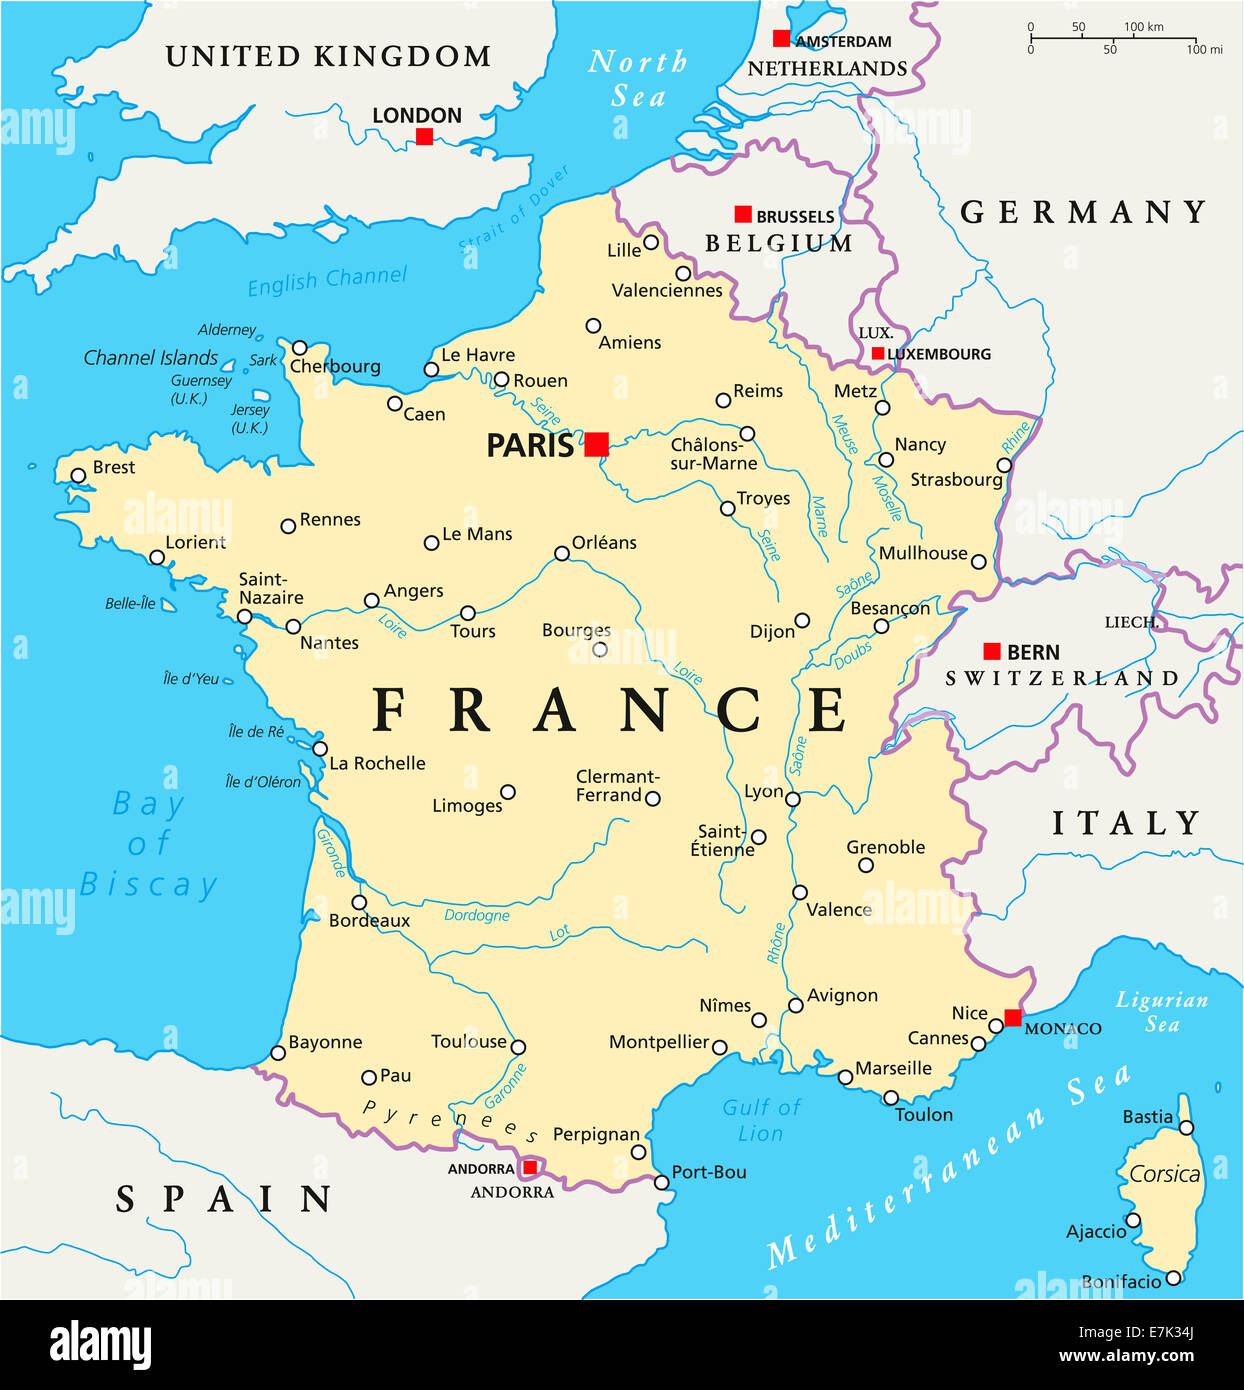 Paris Map Europe France Political Map with capital Paris, national borders, most